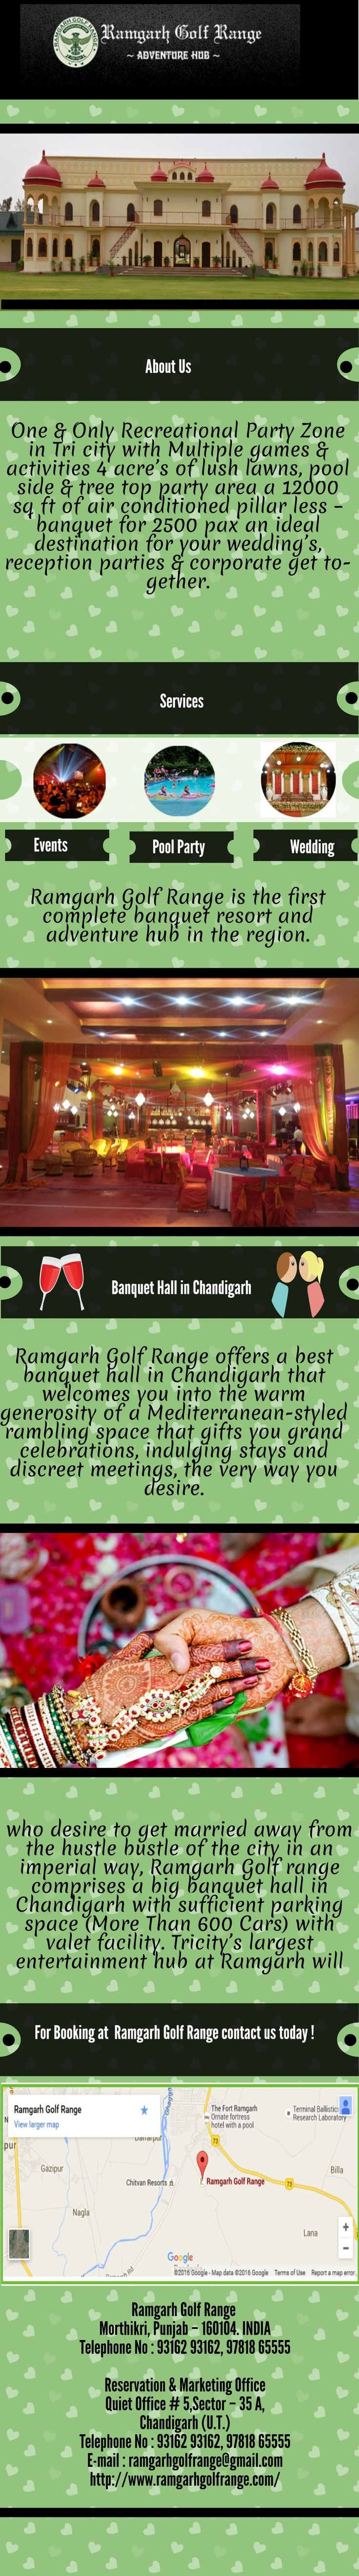 Ramgarh Golf Range provides the best banquet hall in Chandigarh area. The banquet hall can be turned into anything you desire may it be indulging stays or discreet meetings.The party hall is equipped with all the modern facilities.